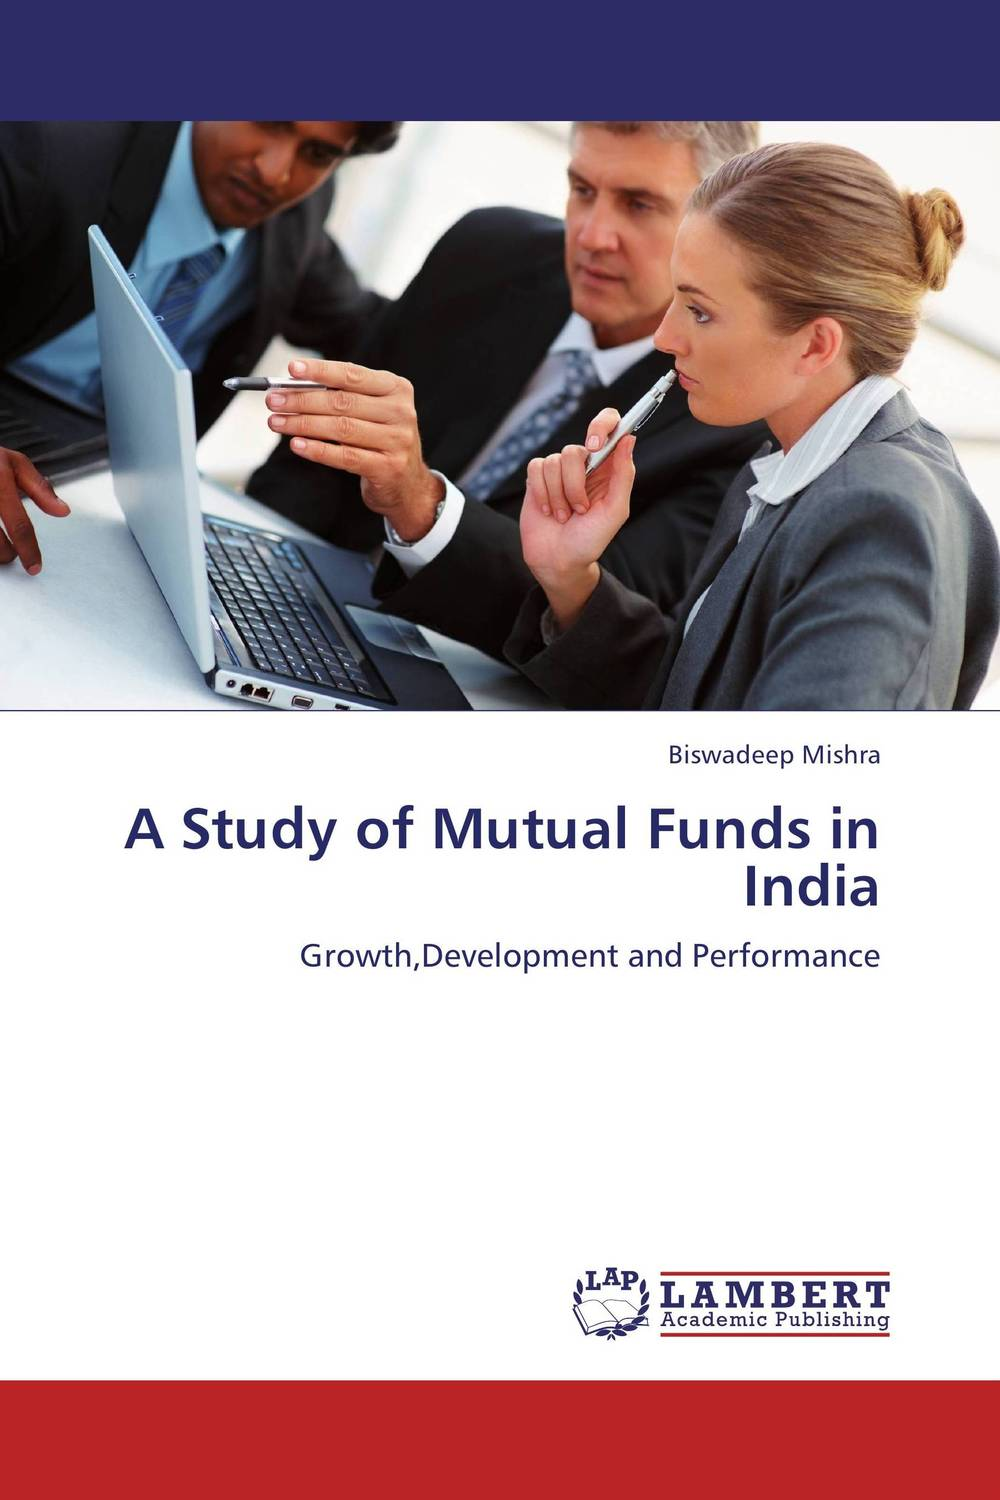 A Study of Mutual Funds in India drug utilisation pattern in a revolving funds scheme